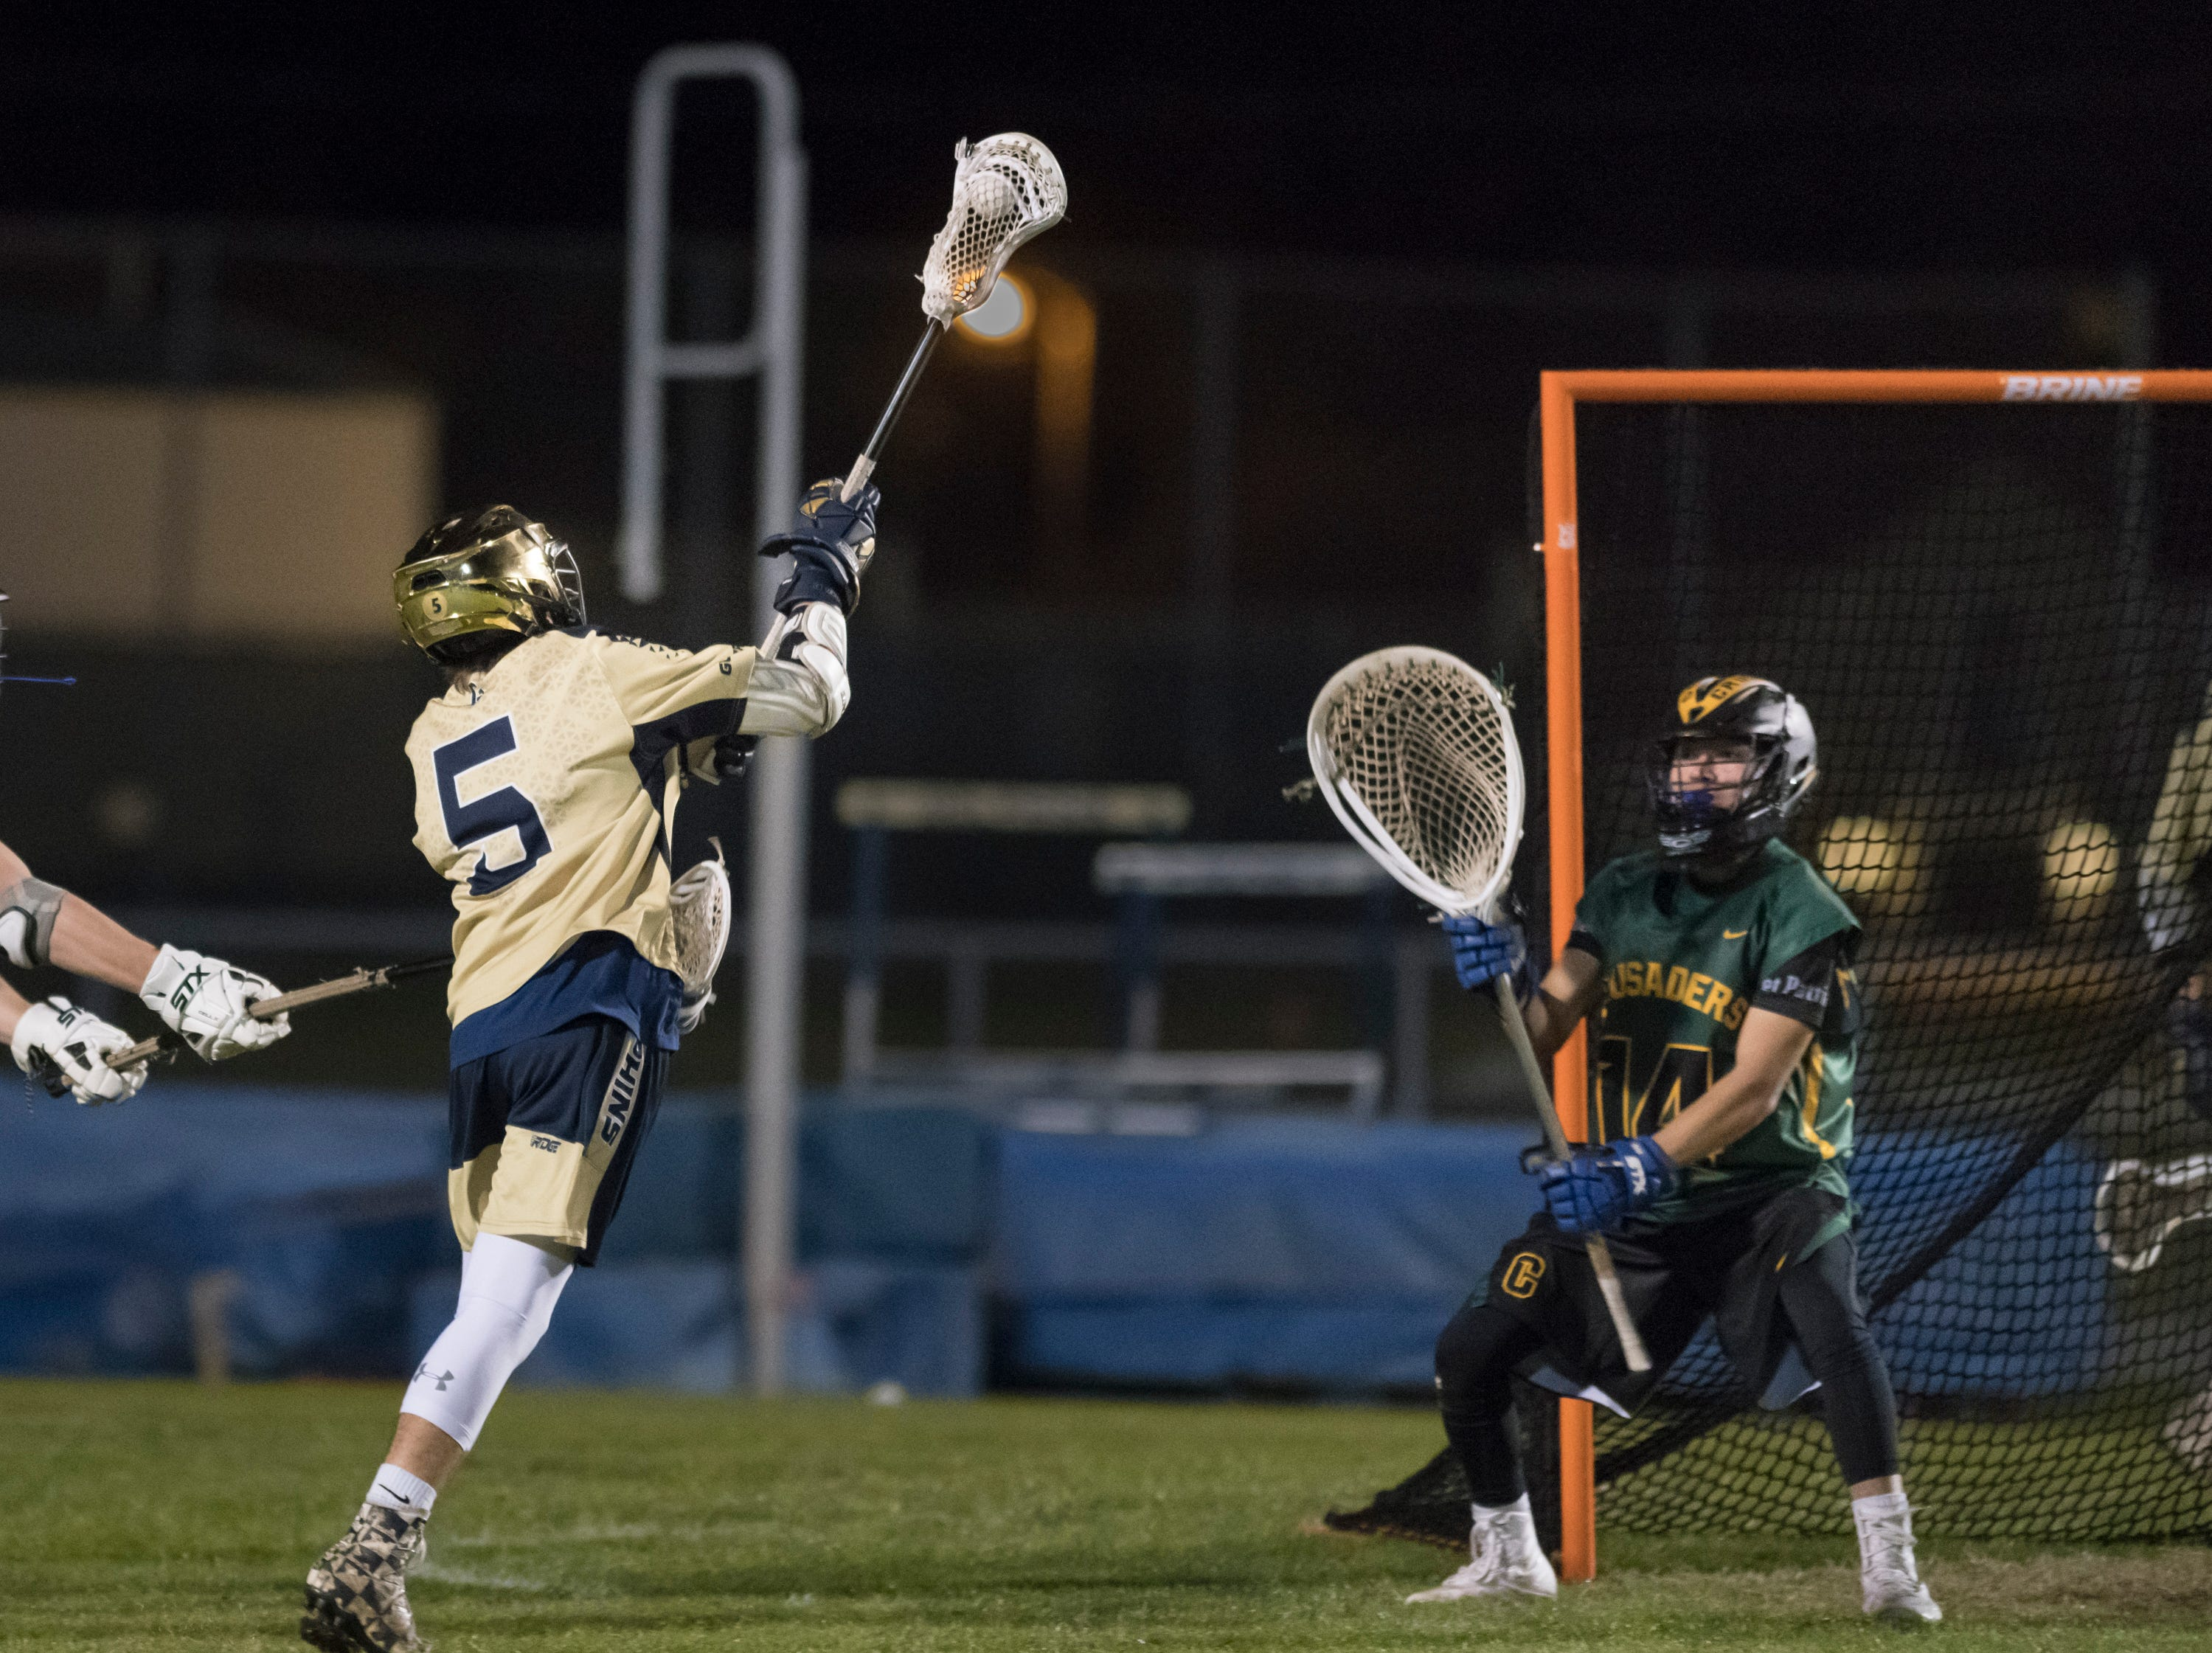 Ashton Marcum (5) shoots during the Catholic vs. Gulf Breeze boys lacrosse game at Gulf Breeze High School on Wednesday, March 6, 2019.